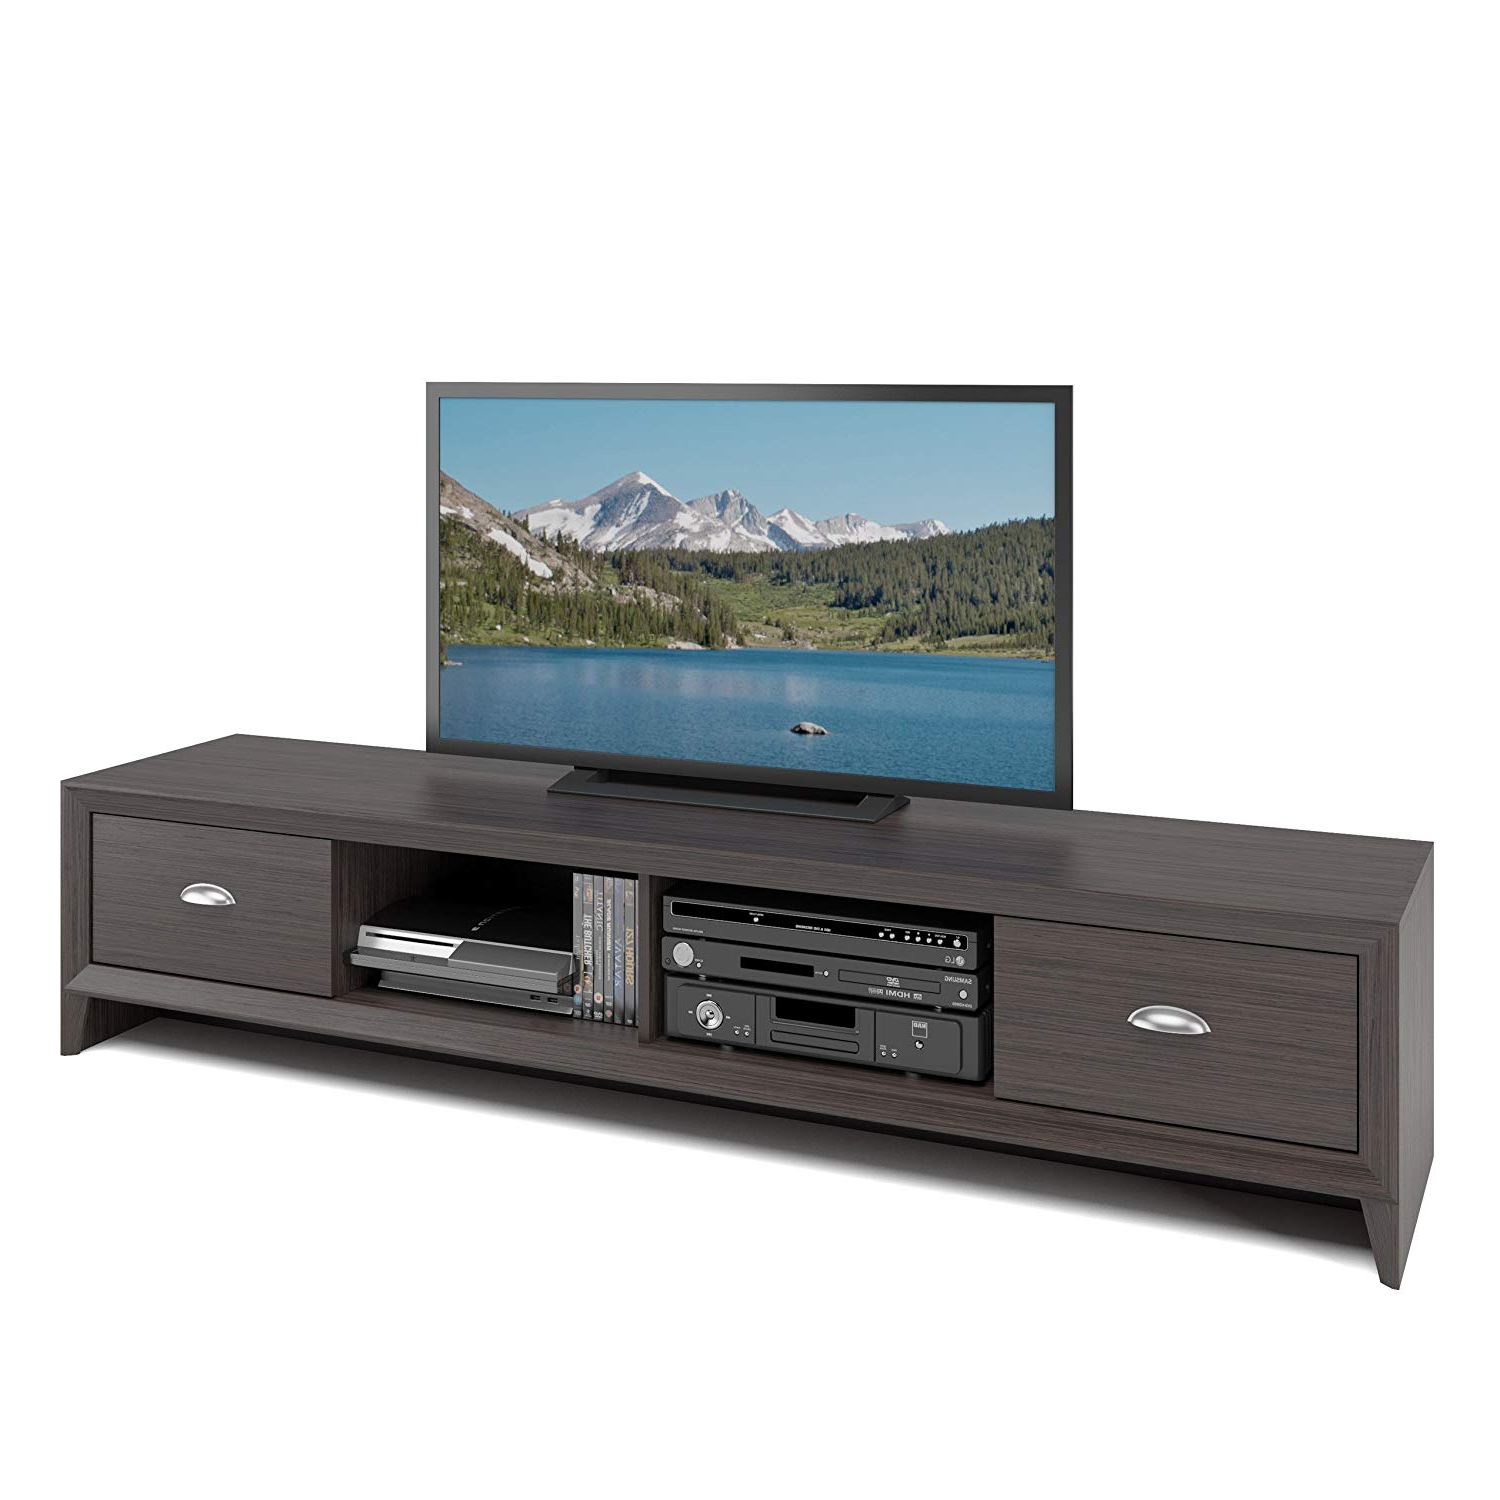 Amazon: Corliving Tlk 872 B Lakewood Tv Bench, Modern Wenge Within Well Known Extra Long Tv Stands (View 3 of 20)